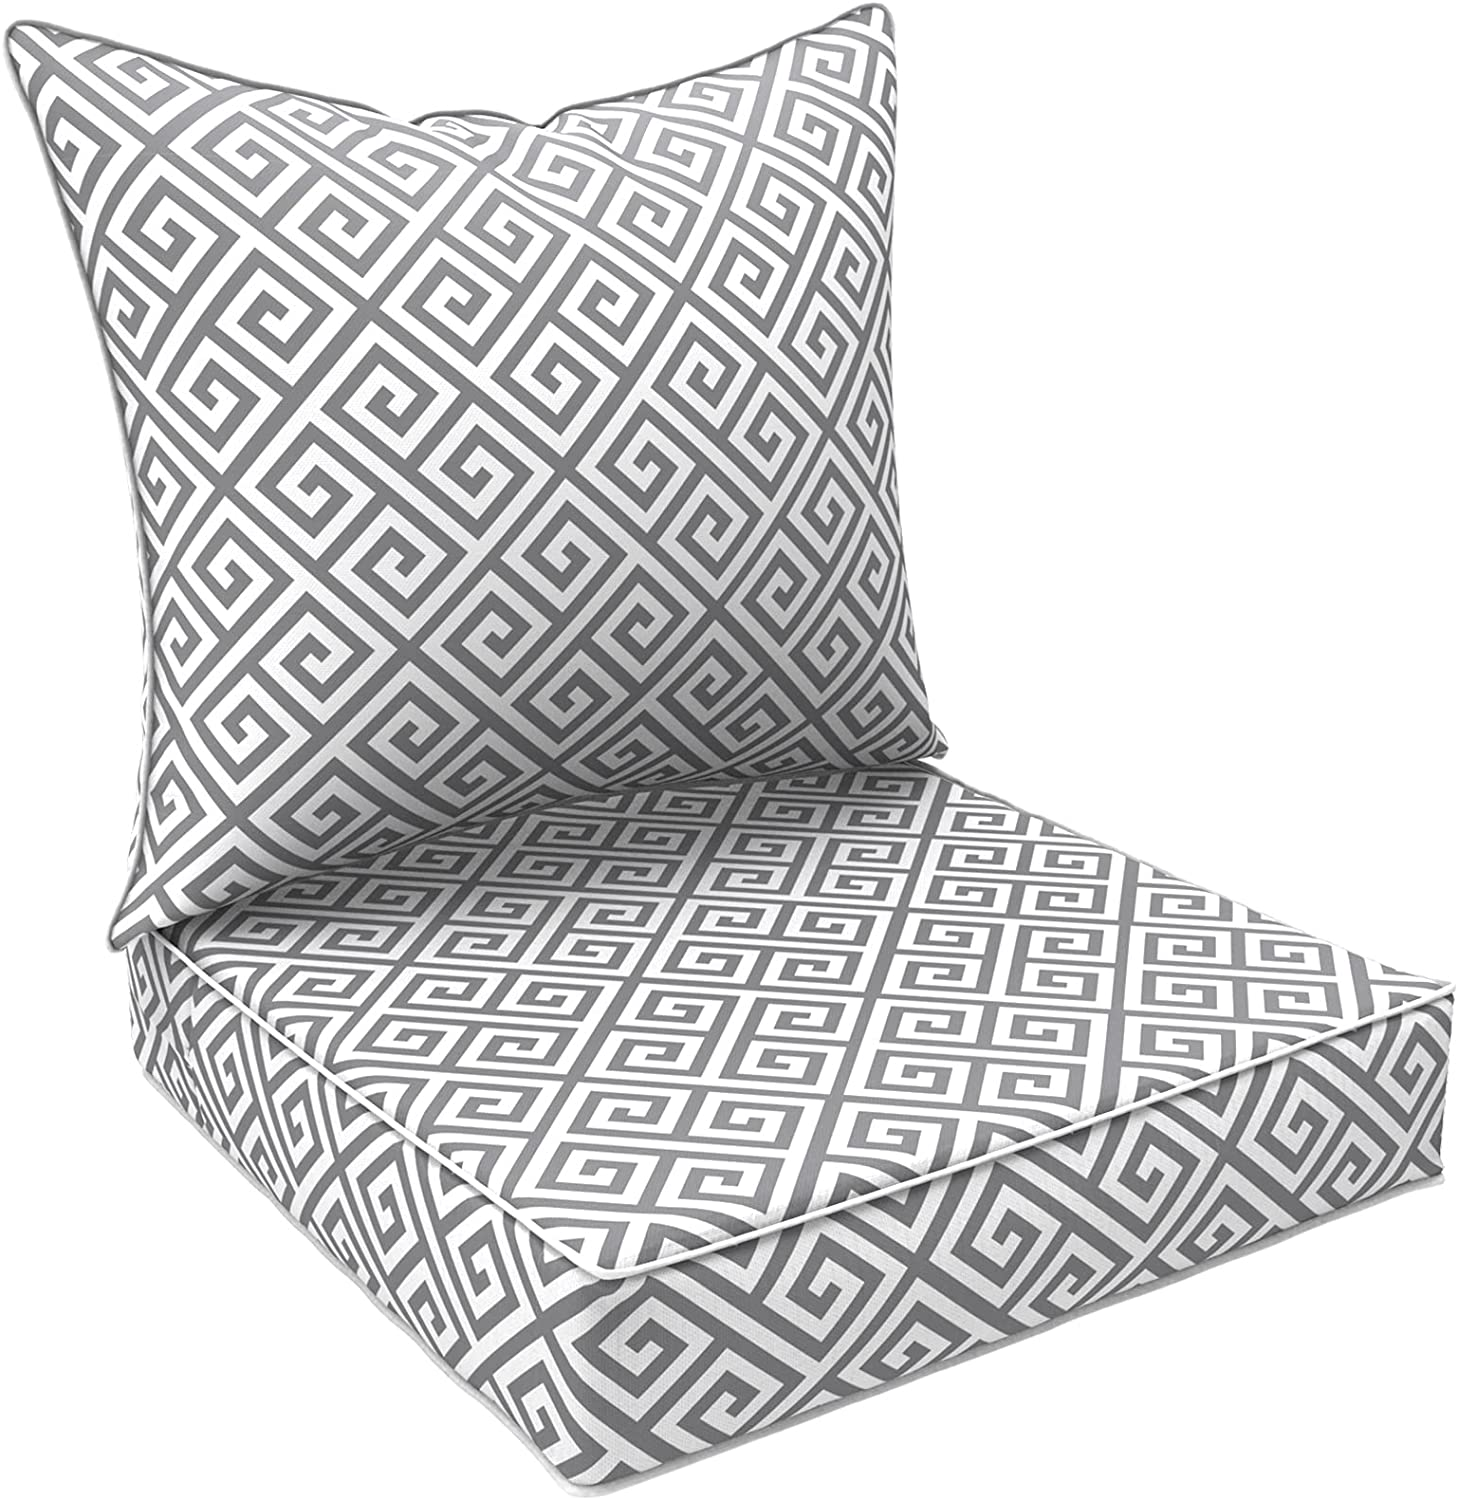 """LVTXIII Outdoor Deep Seat Cushion Patio Seat and Back Cushion Set All-Weather Replacement Chair Cushion for Dining Arm Chairs, Wicker Chairs and Garden Furniture Decoration, 25""""x25""""x5"""" , MagMaze Grey"""